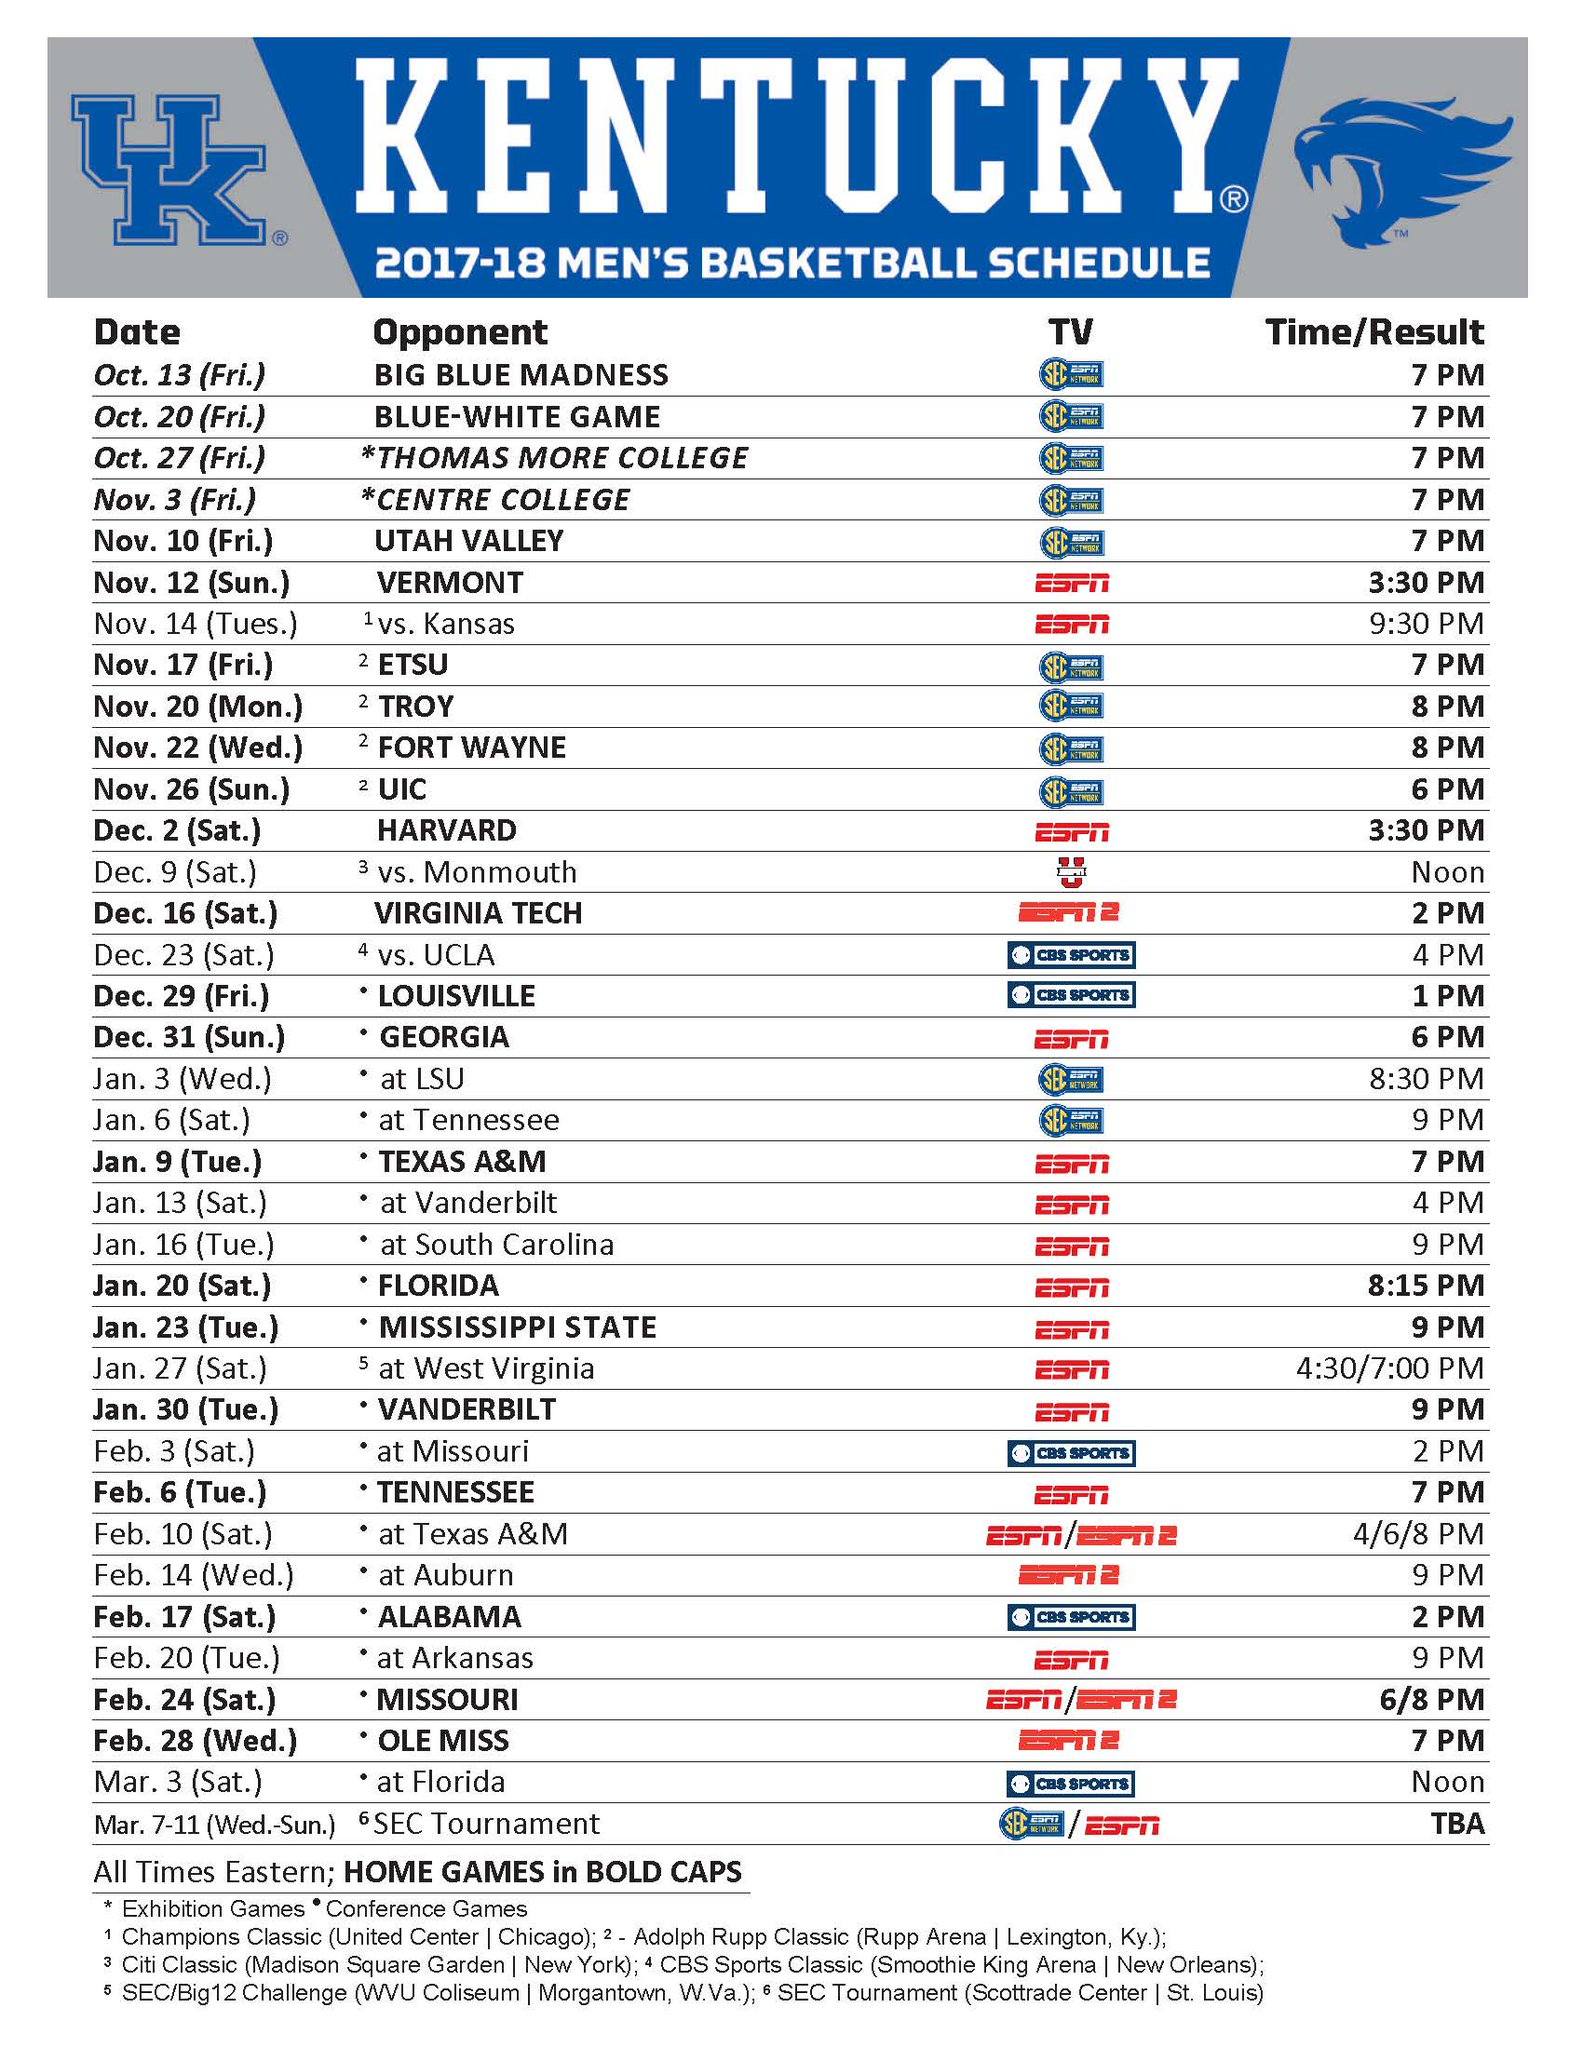 Kentucky Wildcats Basketball: Full 2017-18 Schedule ...